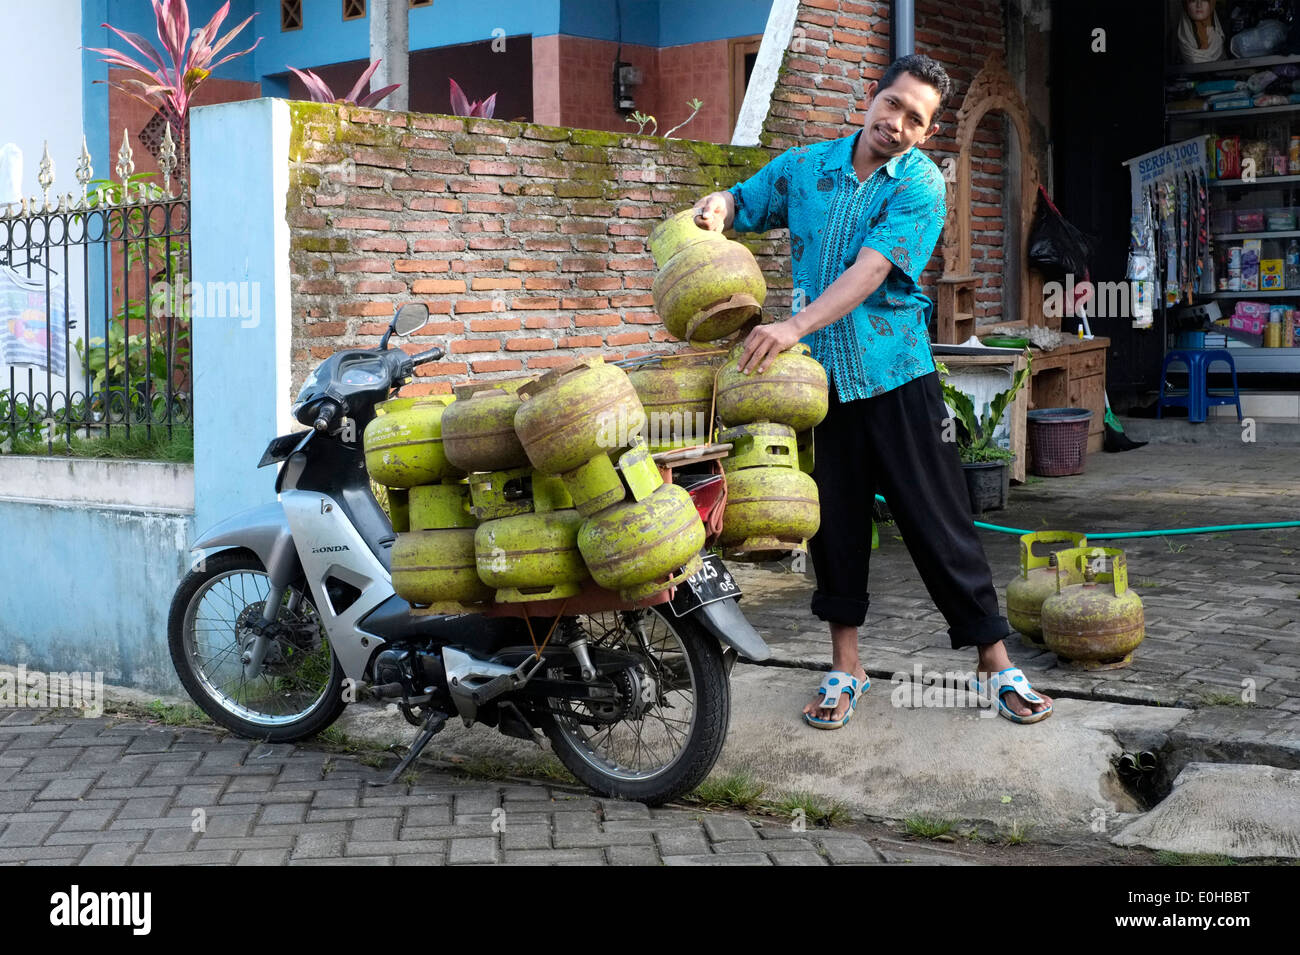 seller delivers propane gas bottles to a village shop for resale from his heavily laden motorbike in rural village Stock Photo